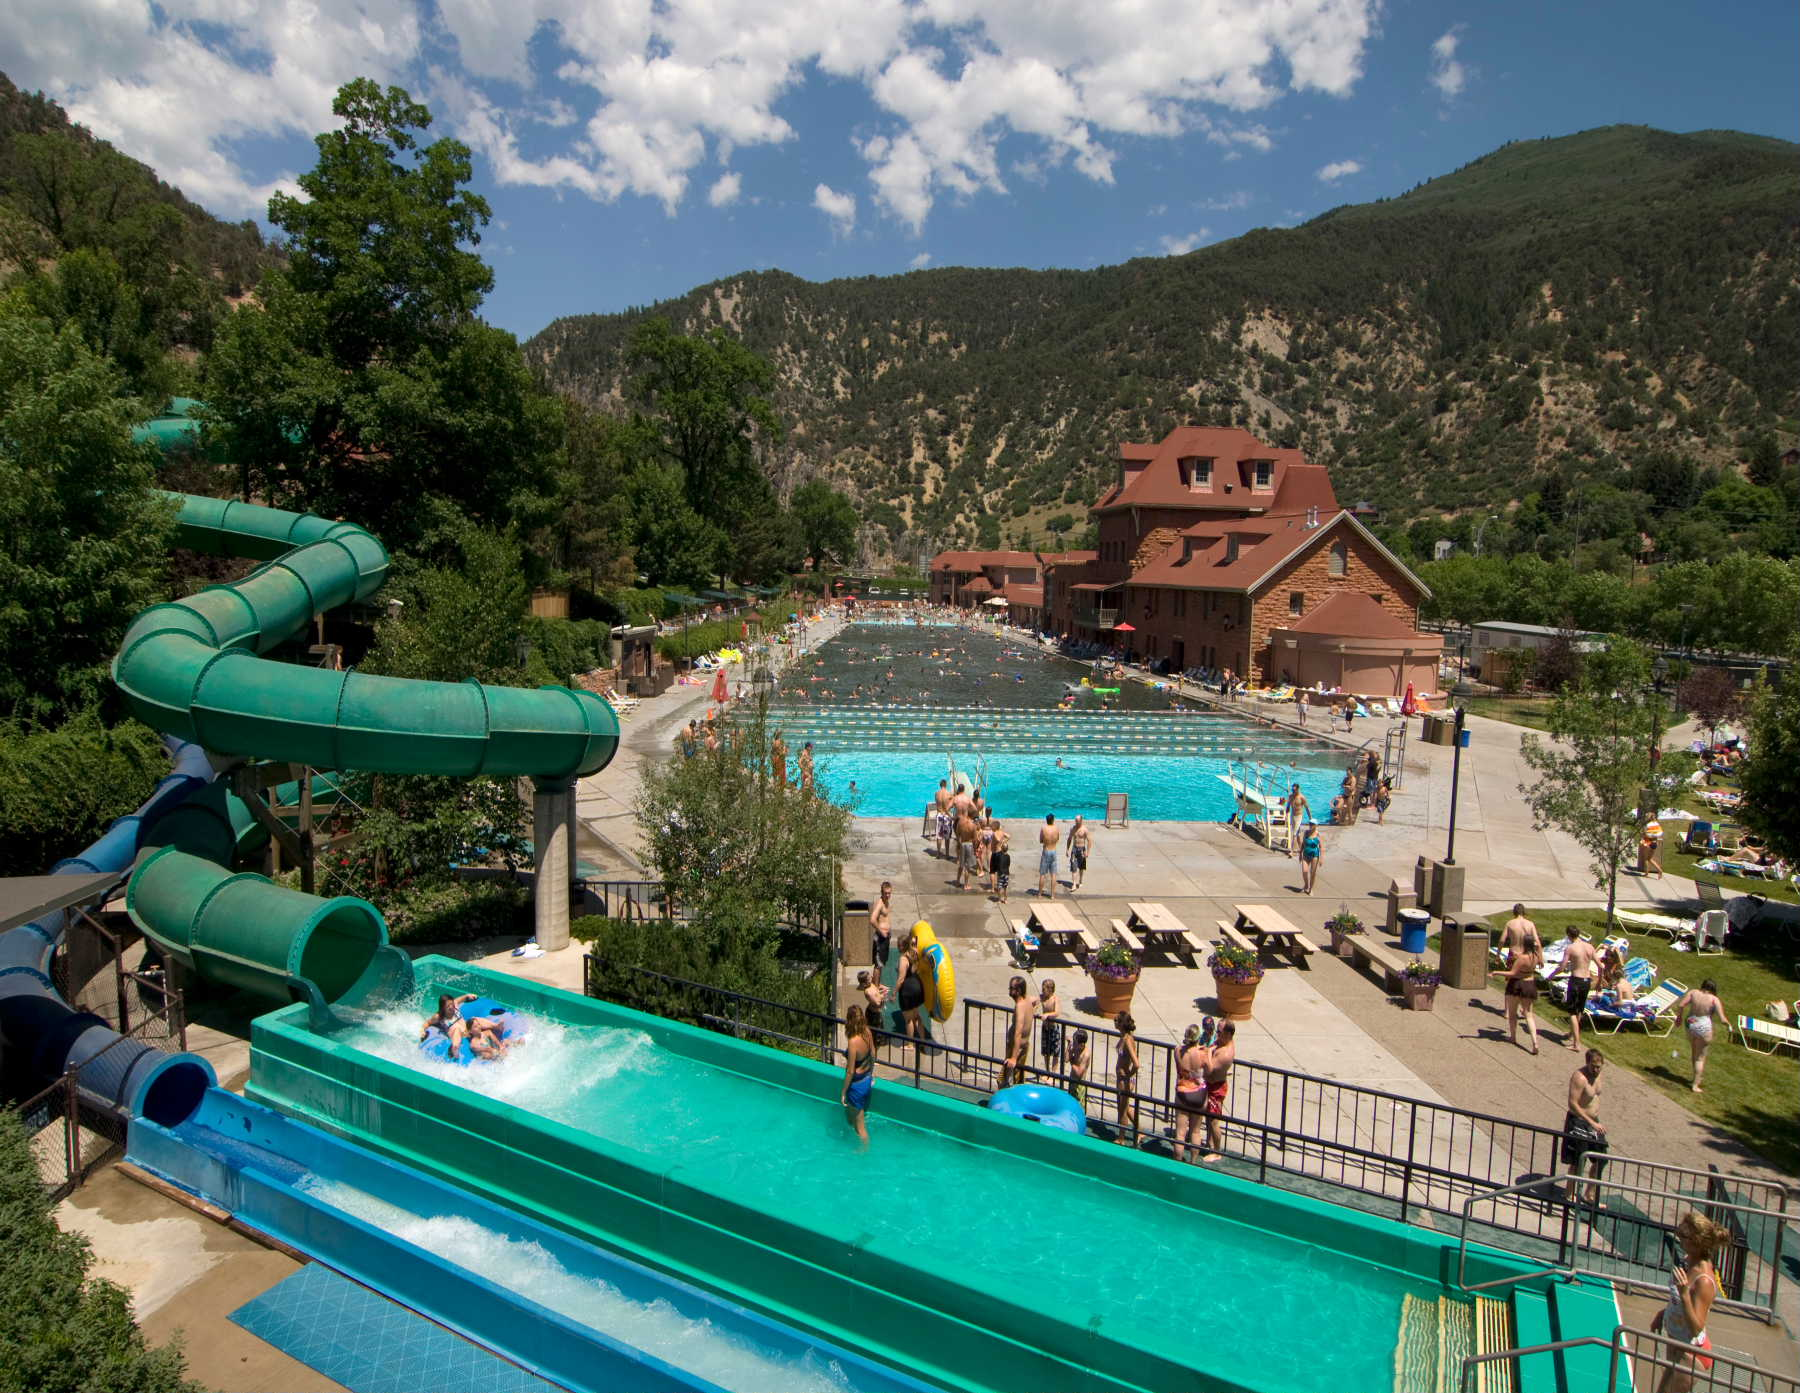 Water Slides At The Glenwood Hot Springs Pool Drop 47 Feet Courtesy